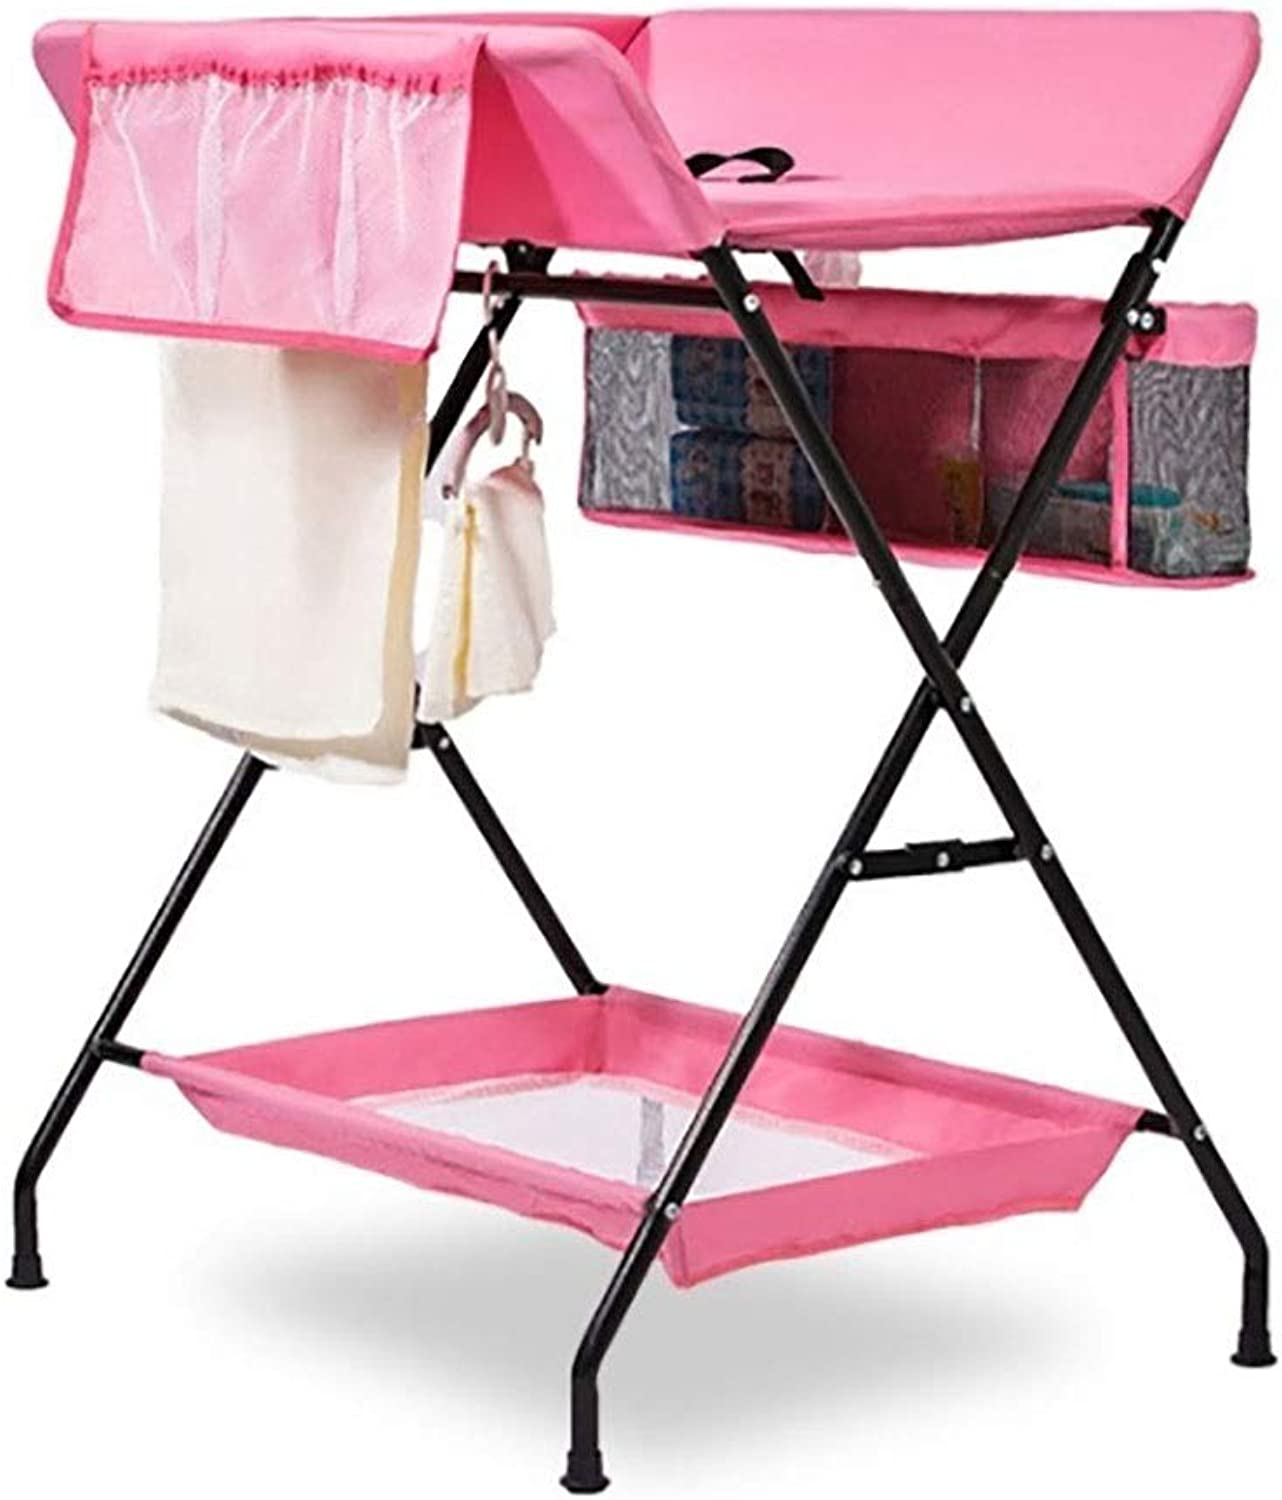 Diaper Changing Tables Pink Diaper Changing Tables, Folding Massaging Storage Organizer Cross Leg for 0-3 Years Old Baby, 25 KG Load(Size  S, L) (Size   S-75×60×100cm)